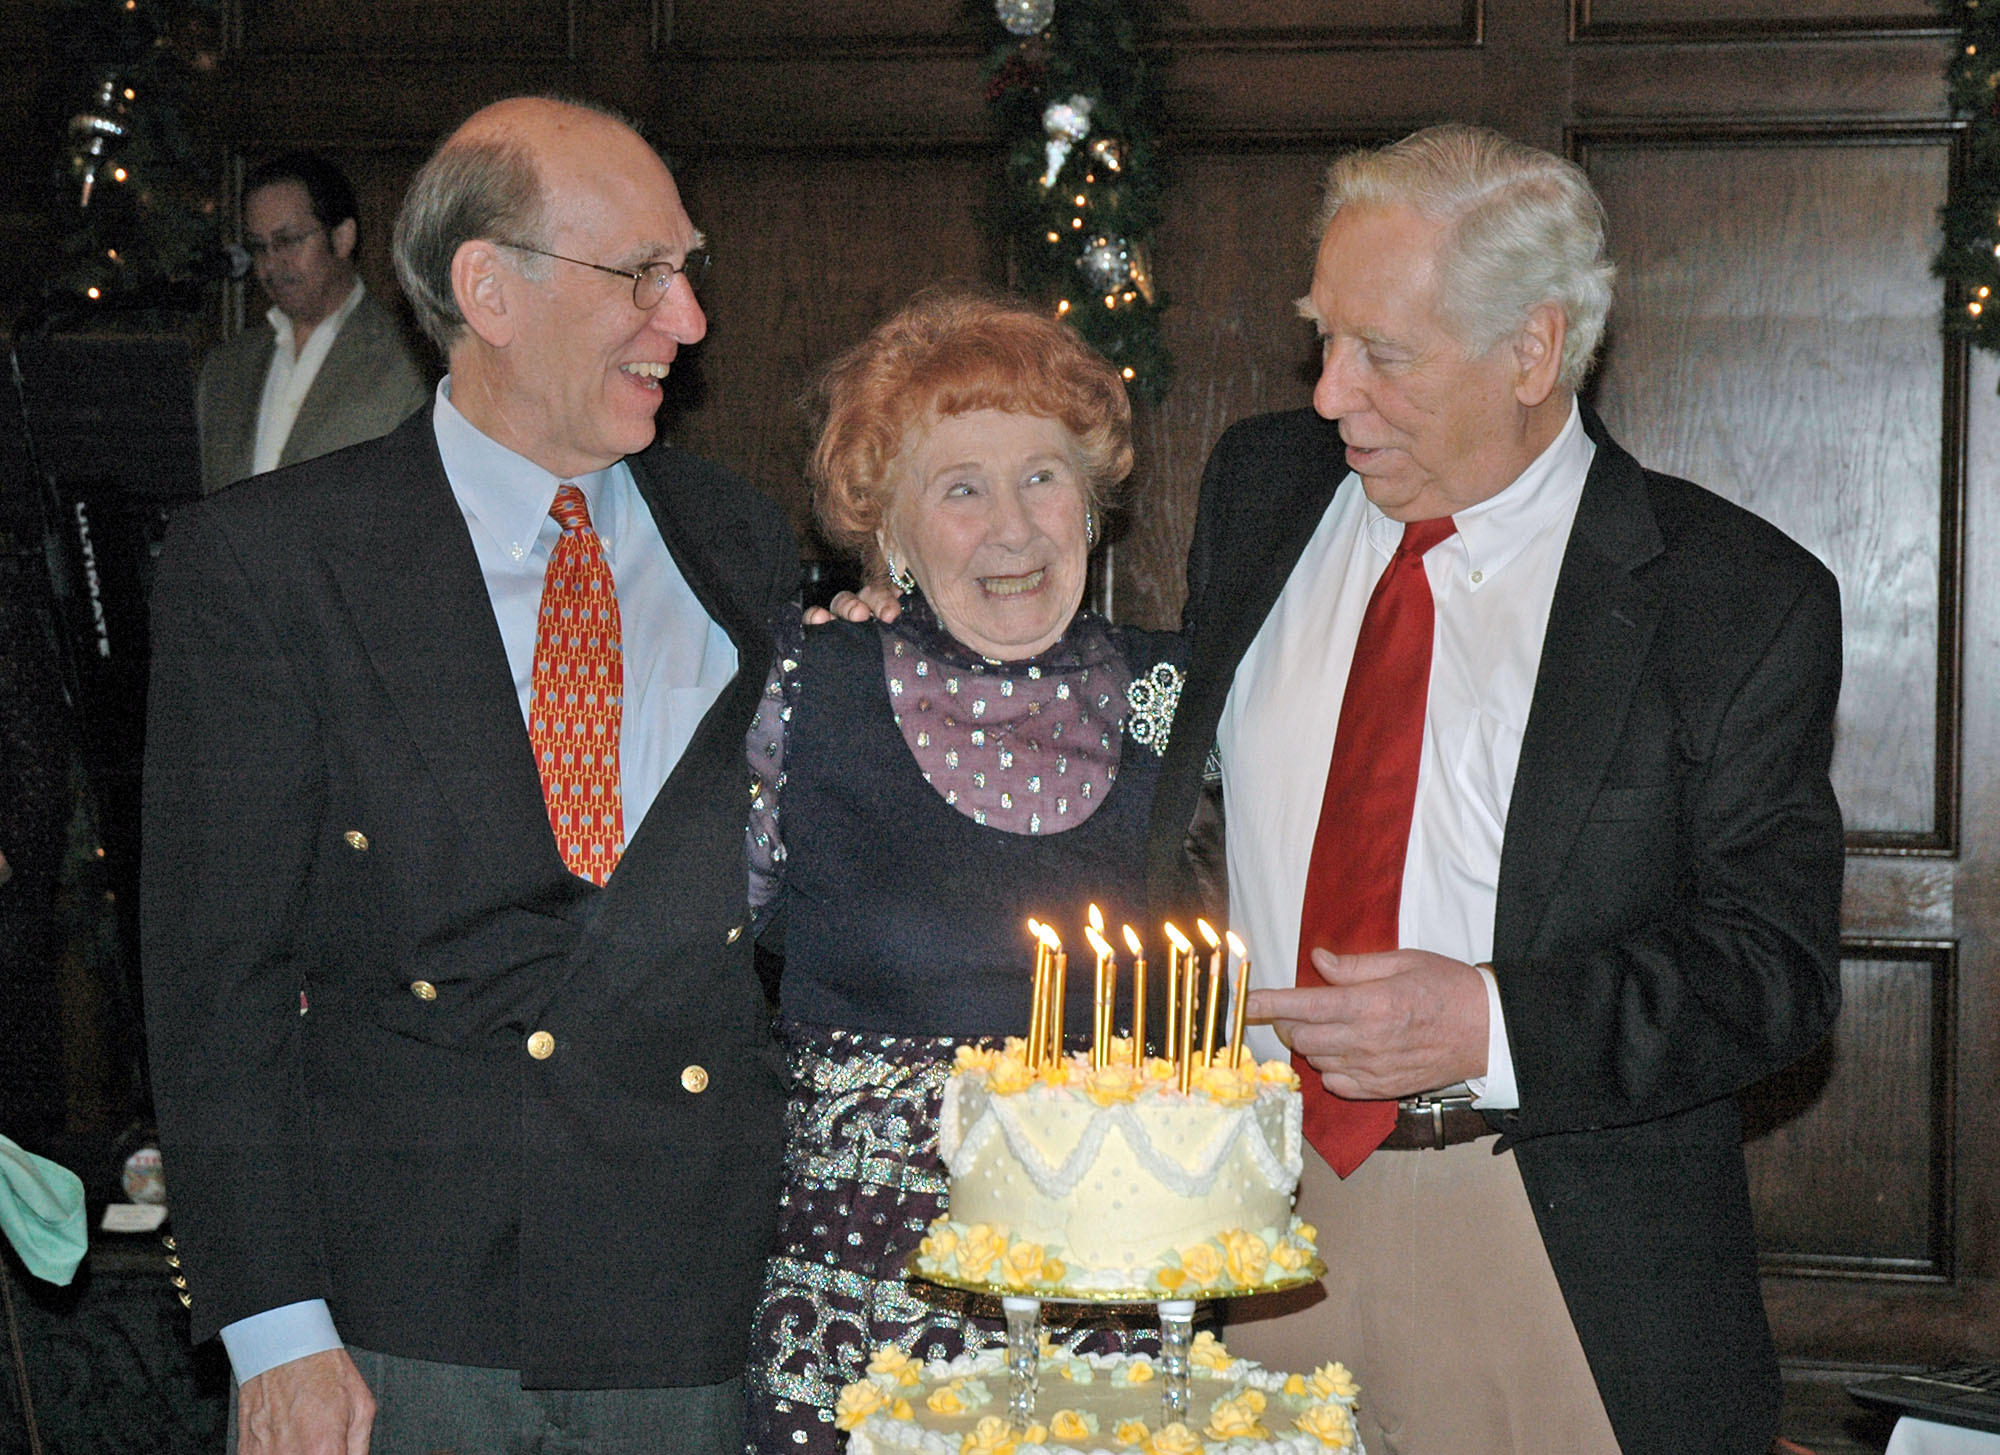 Grace Mylroie Patz, celebrating her 100th birthday, prepares to blow out the candles on her cake with help from her sons Gerry Mylroie, left, and Jim Mylroie at Lakeside Golf Club.